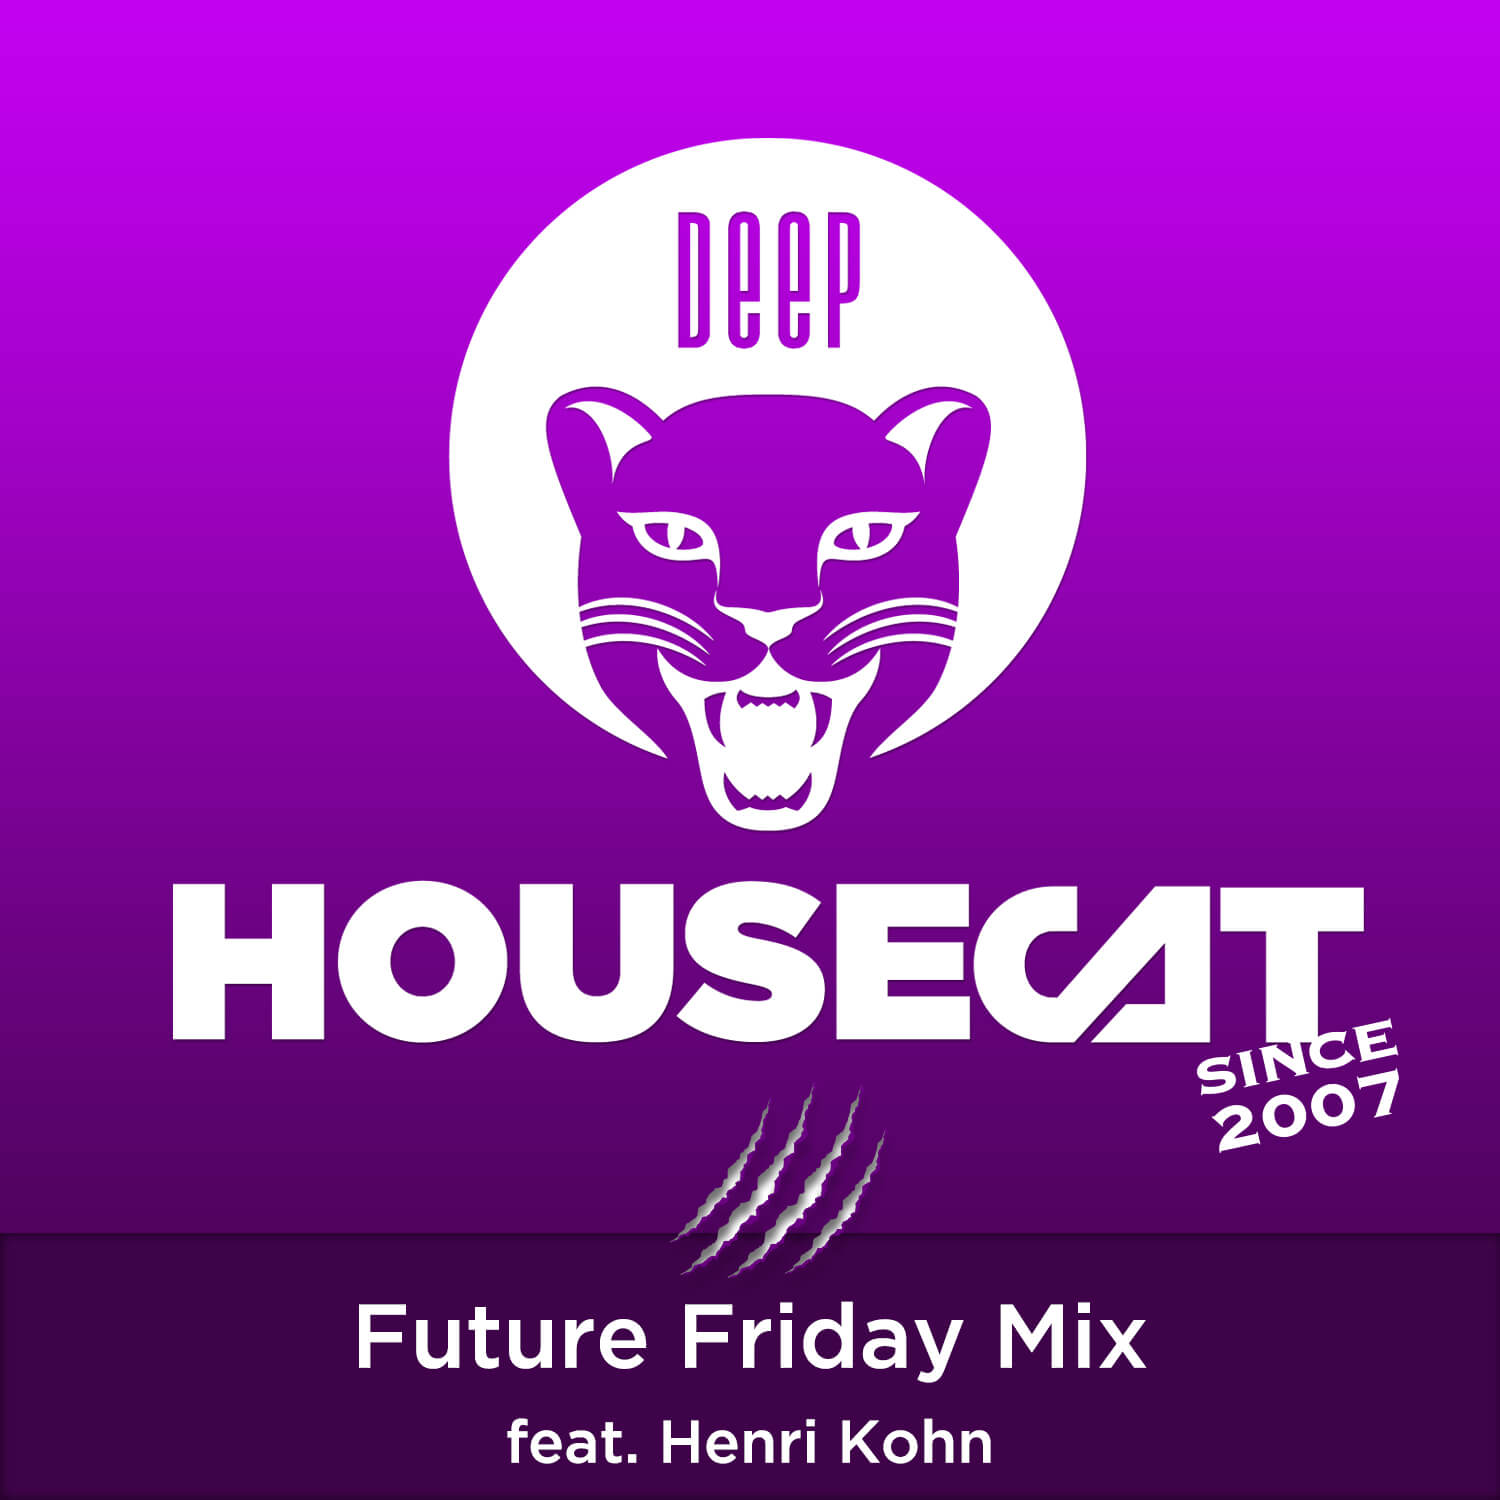 Future Friday Mix - feat. Henri Kohn